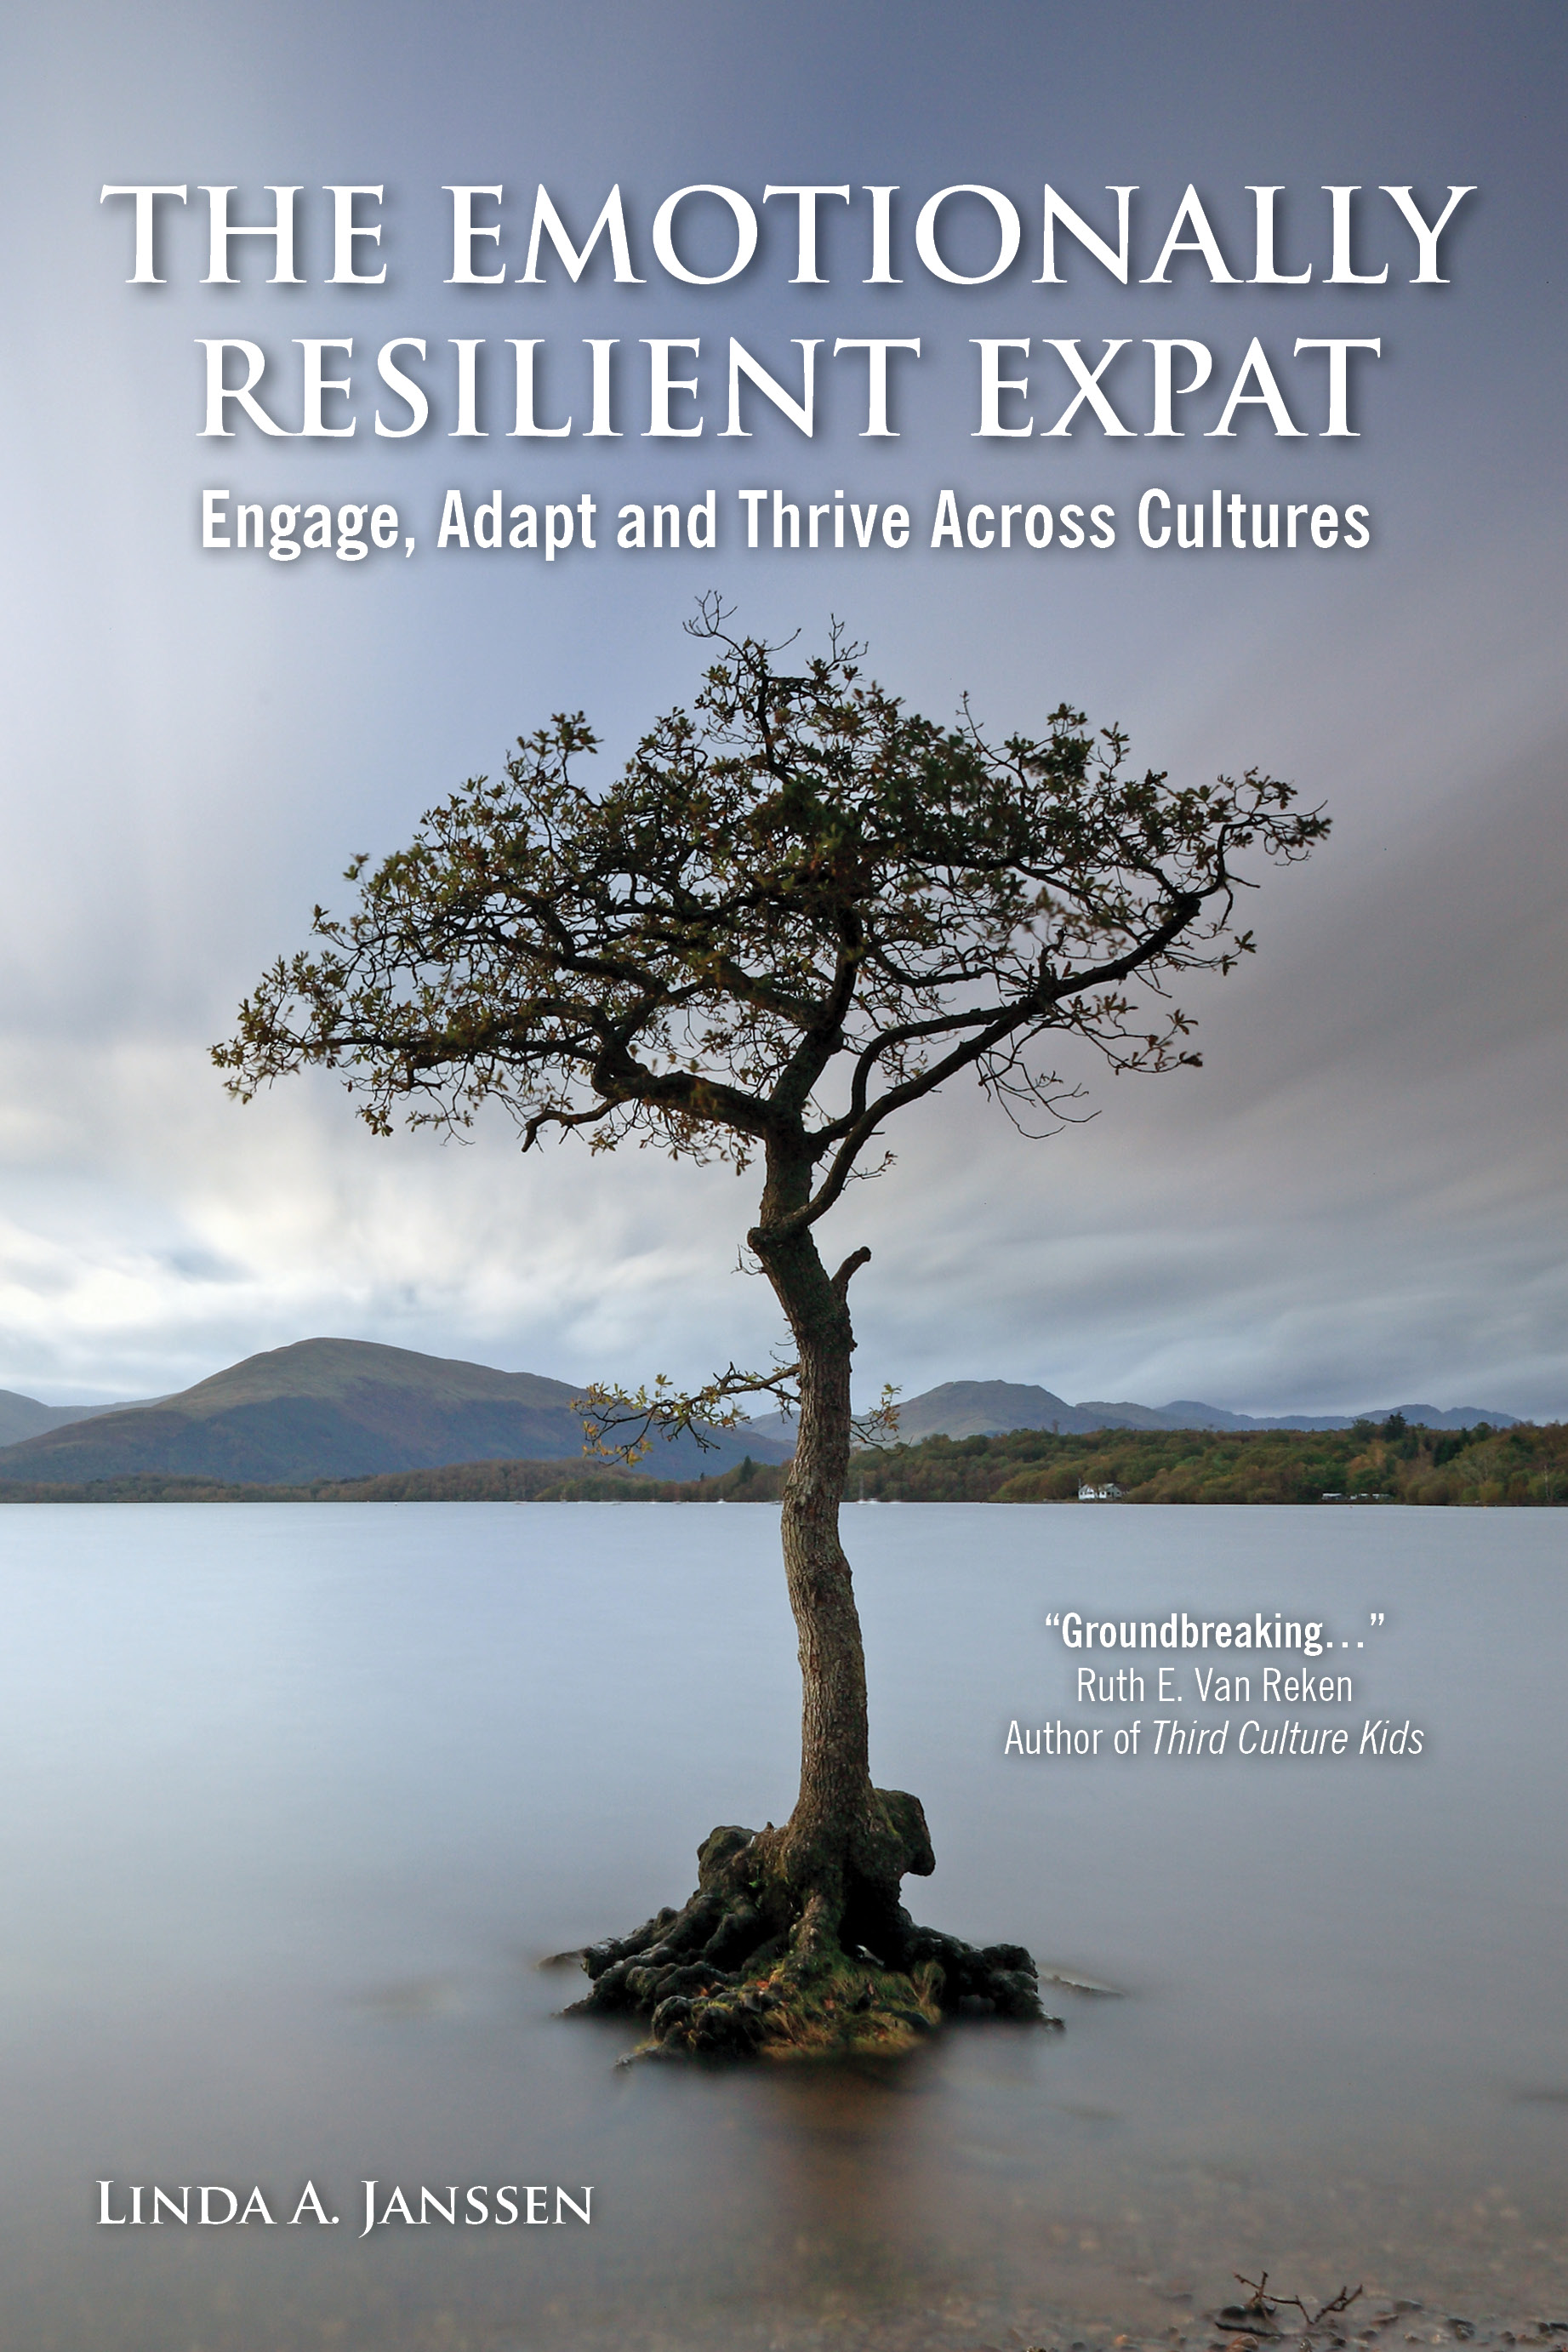 BOOK REVIEW: The Emotionally Resilient Expat: Engage, Adapt and Thrive Across Cultures (2013) by Linda A. Janssen